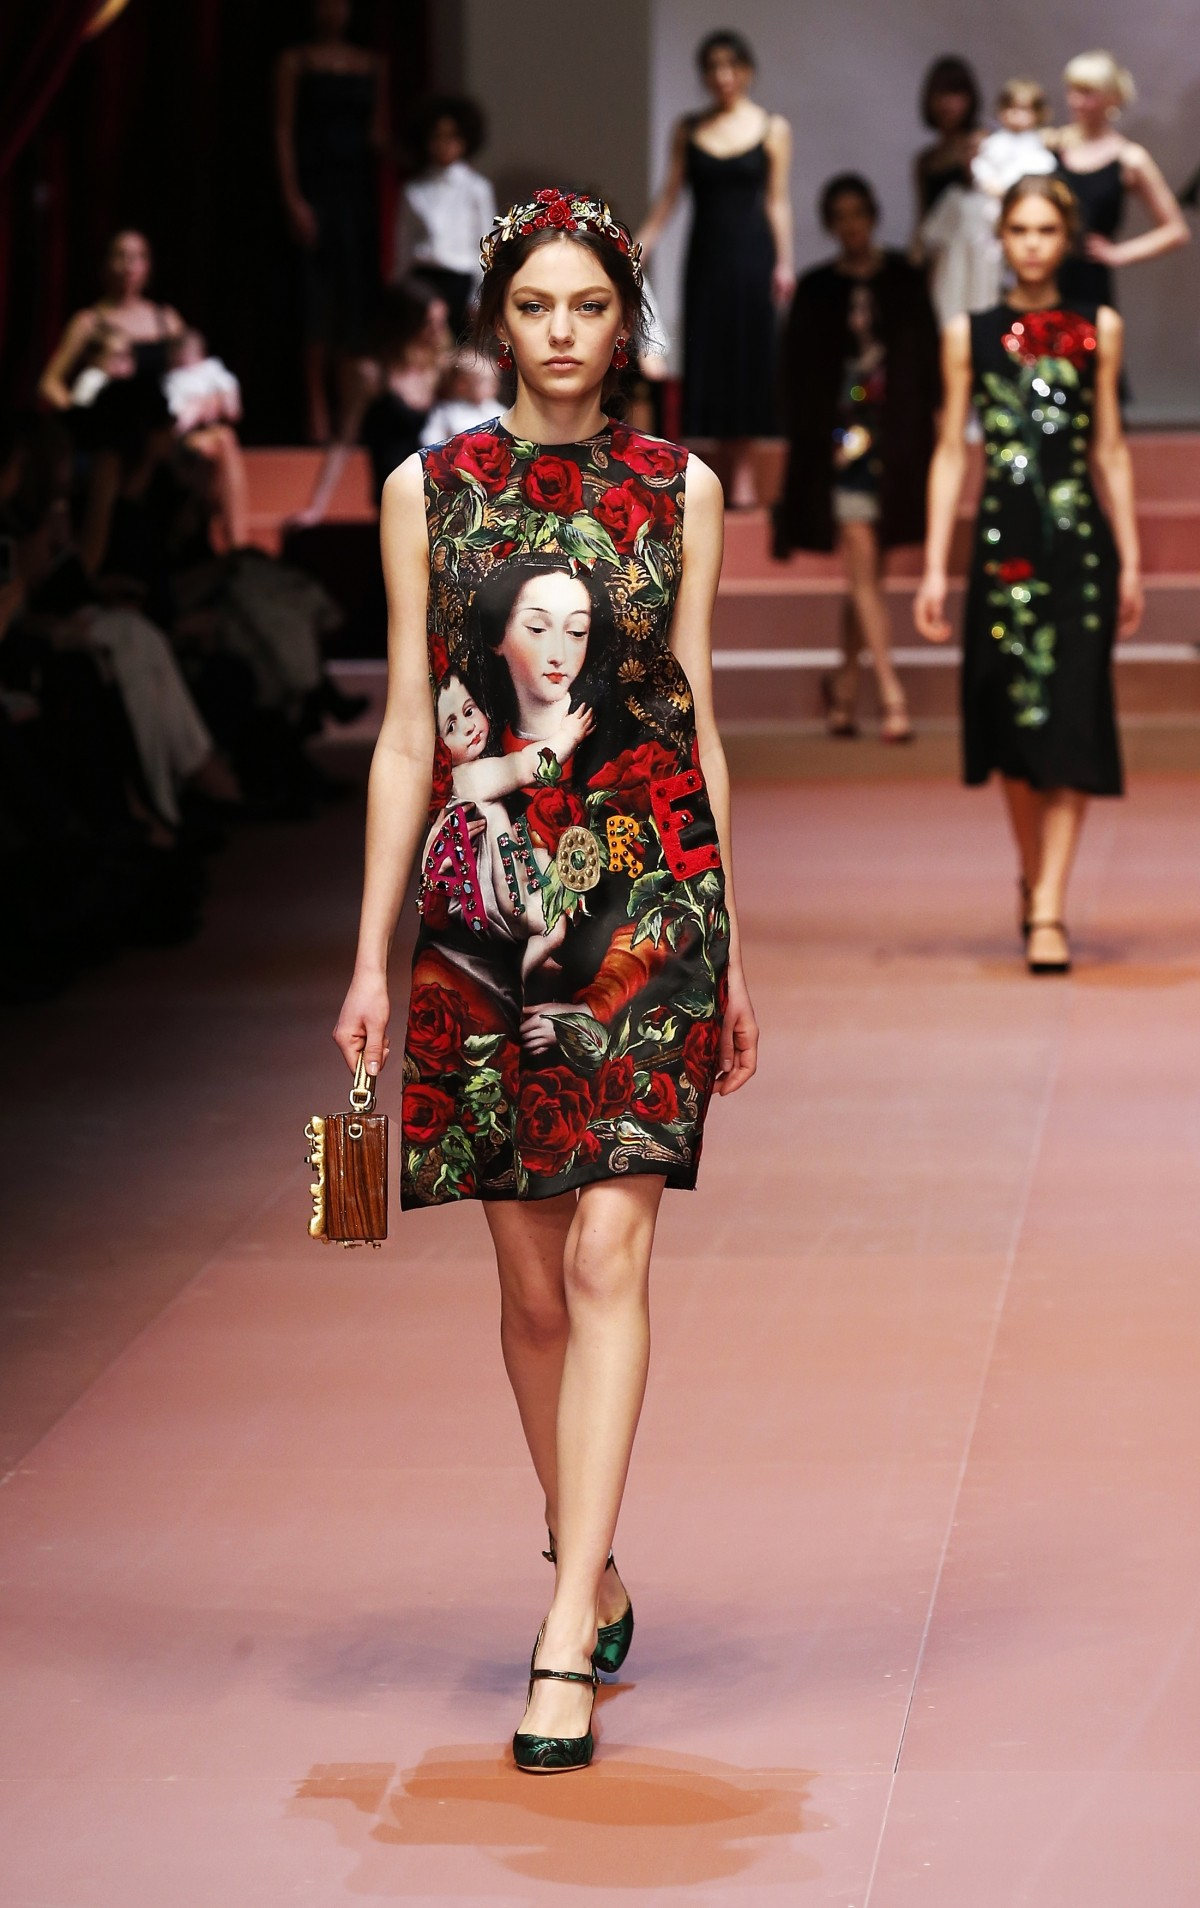 Milan Fashion Week 2015: Pregnant Models Walks The Ramp for Dolce & Gabbana